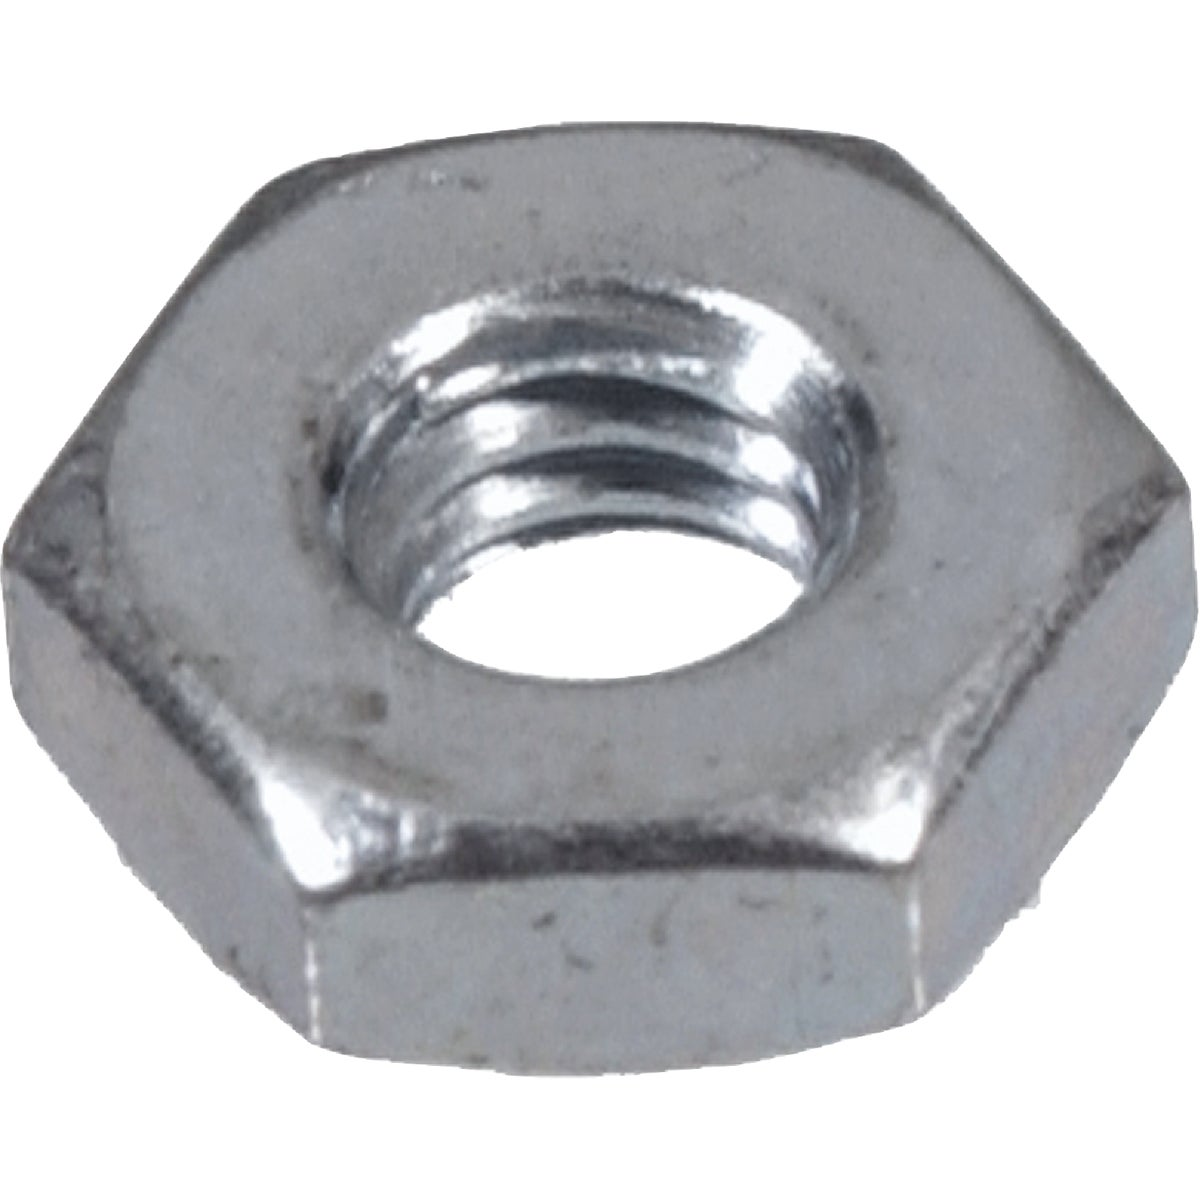 4-40 HEX MACH SCREW NUT - 140009 by Hillman Fastener